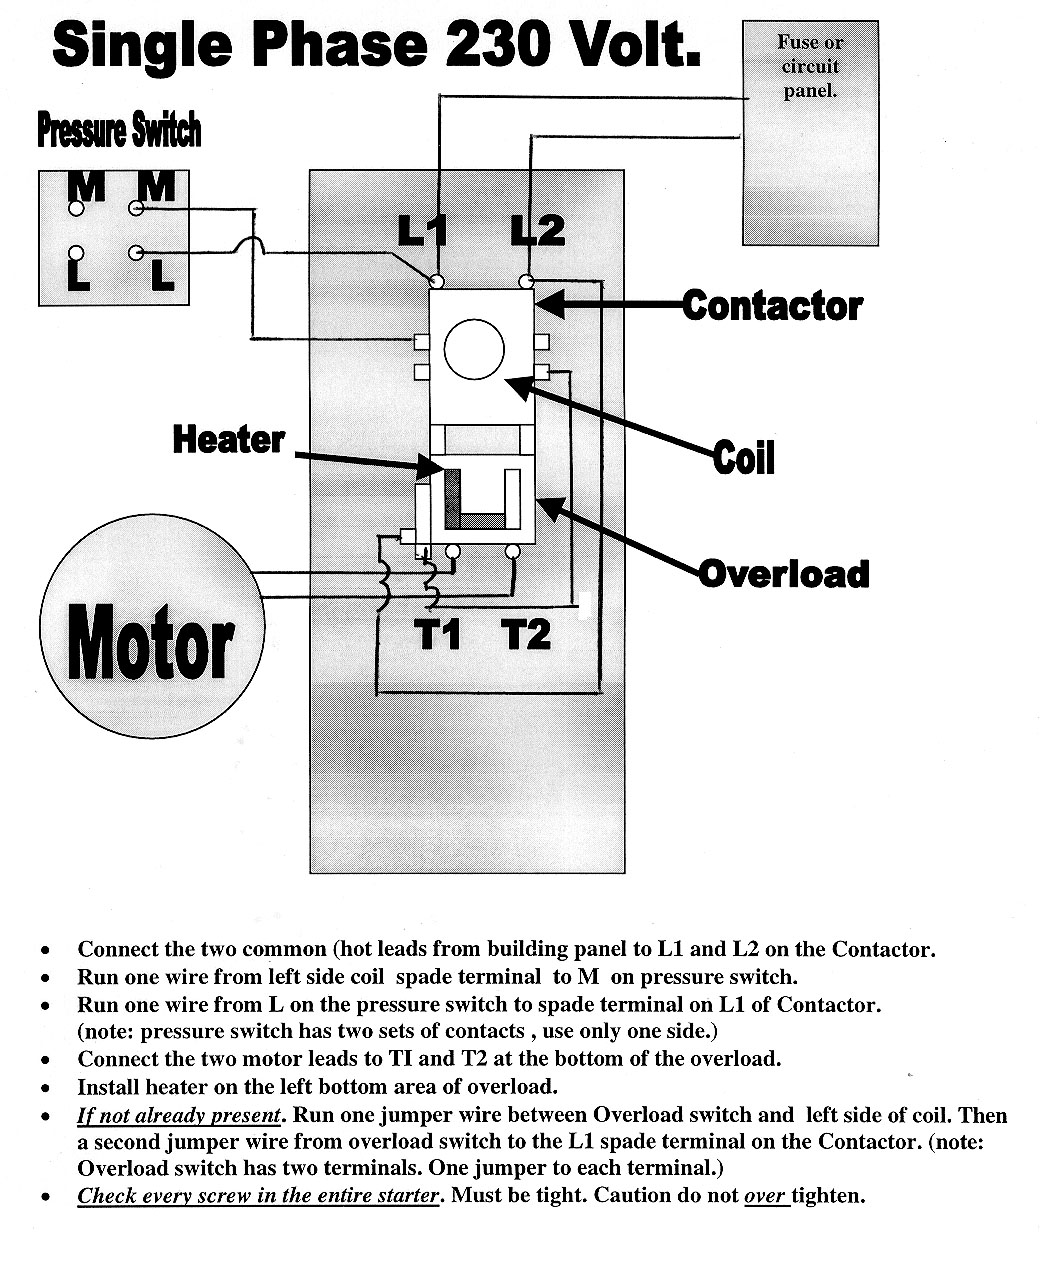 1PhWiring air compressor magnetic starters mastertoolrepair com husky air compressor wiring diagram at edmiracle.co